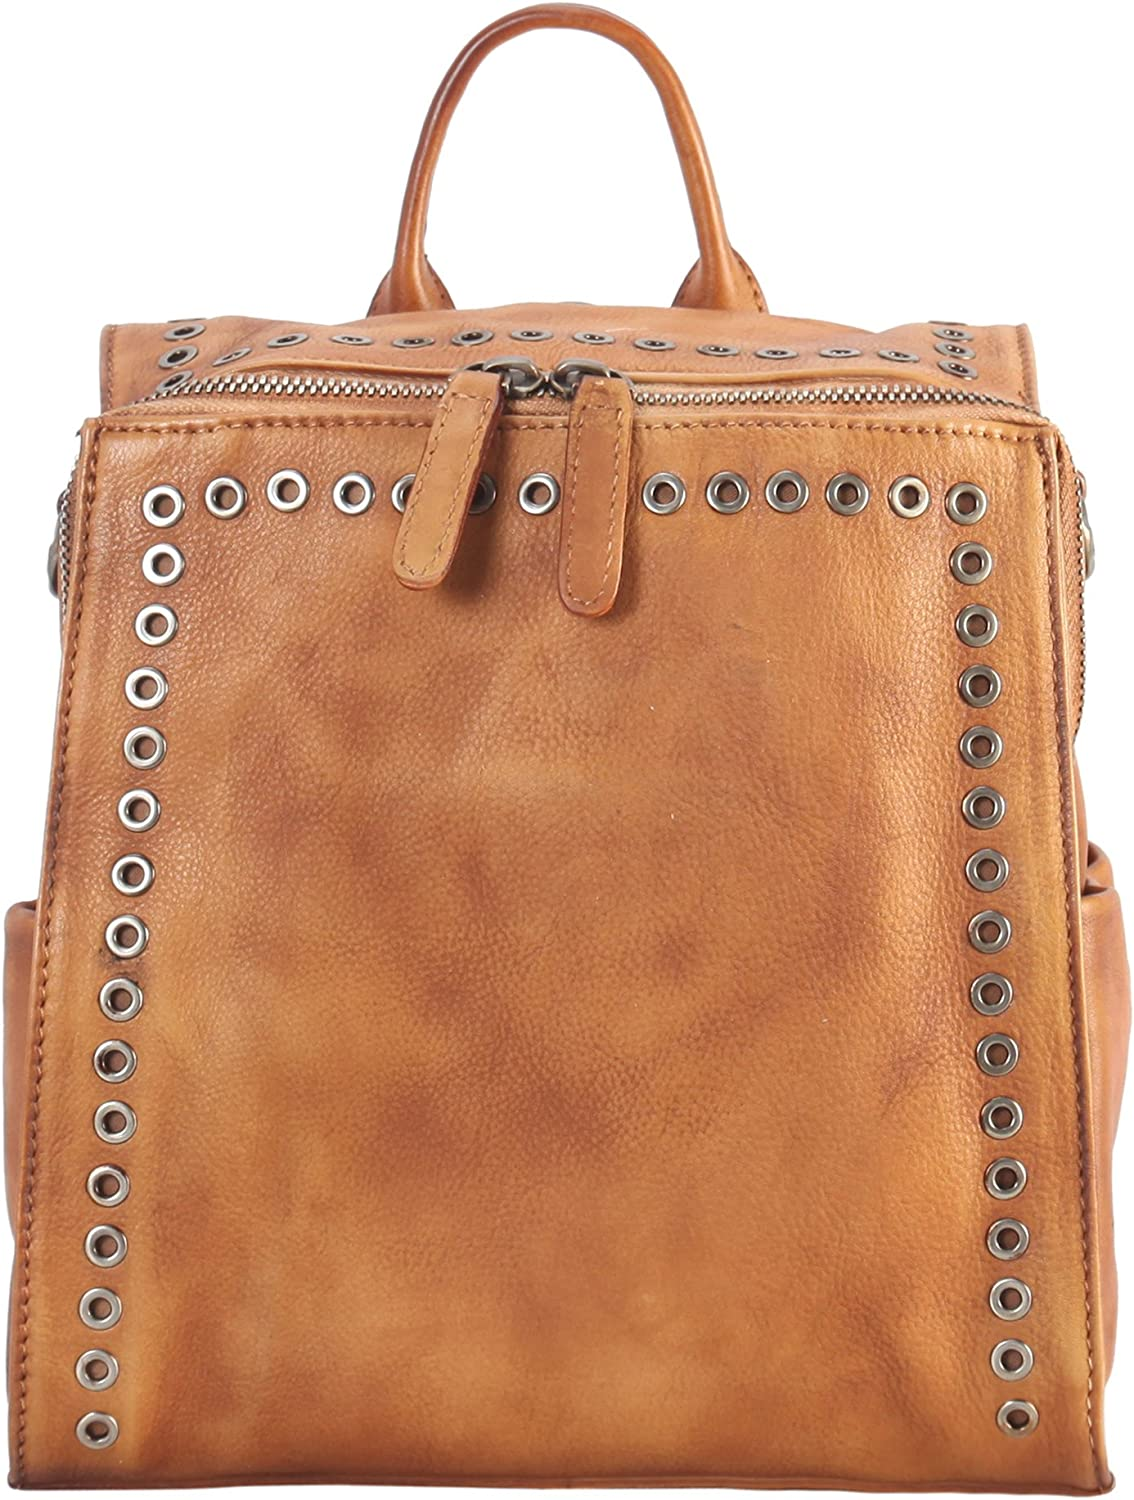 Diophy Genuine Leather Circular Stud Edging Medium Two Ways Use Backpack 170672